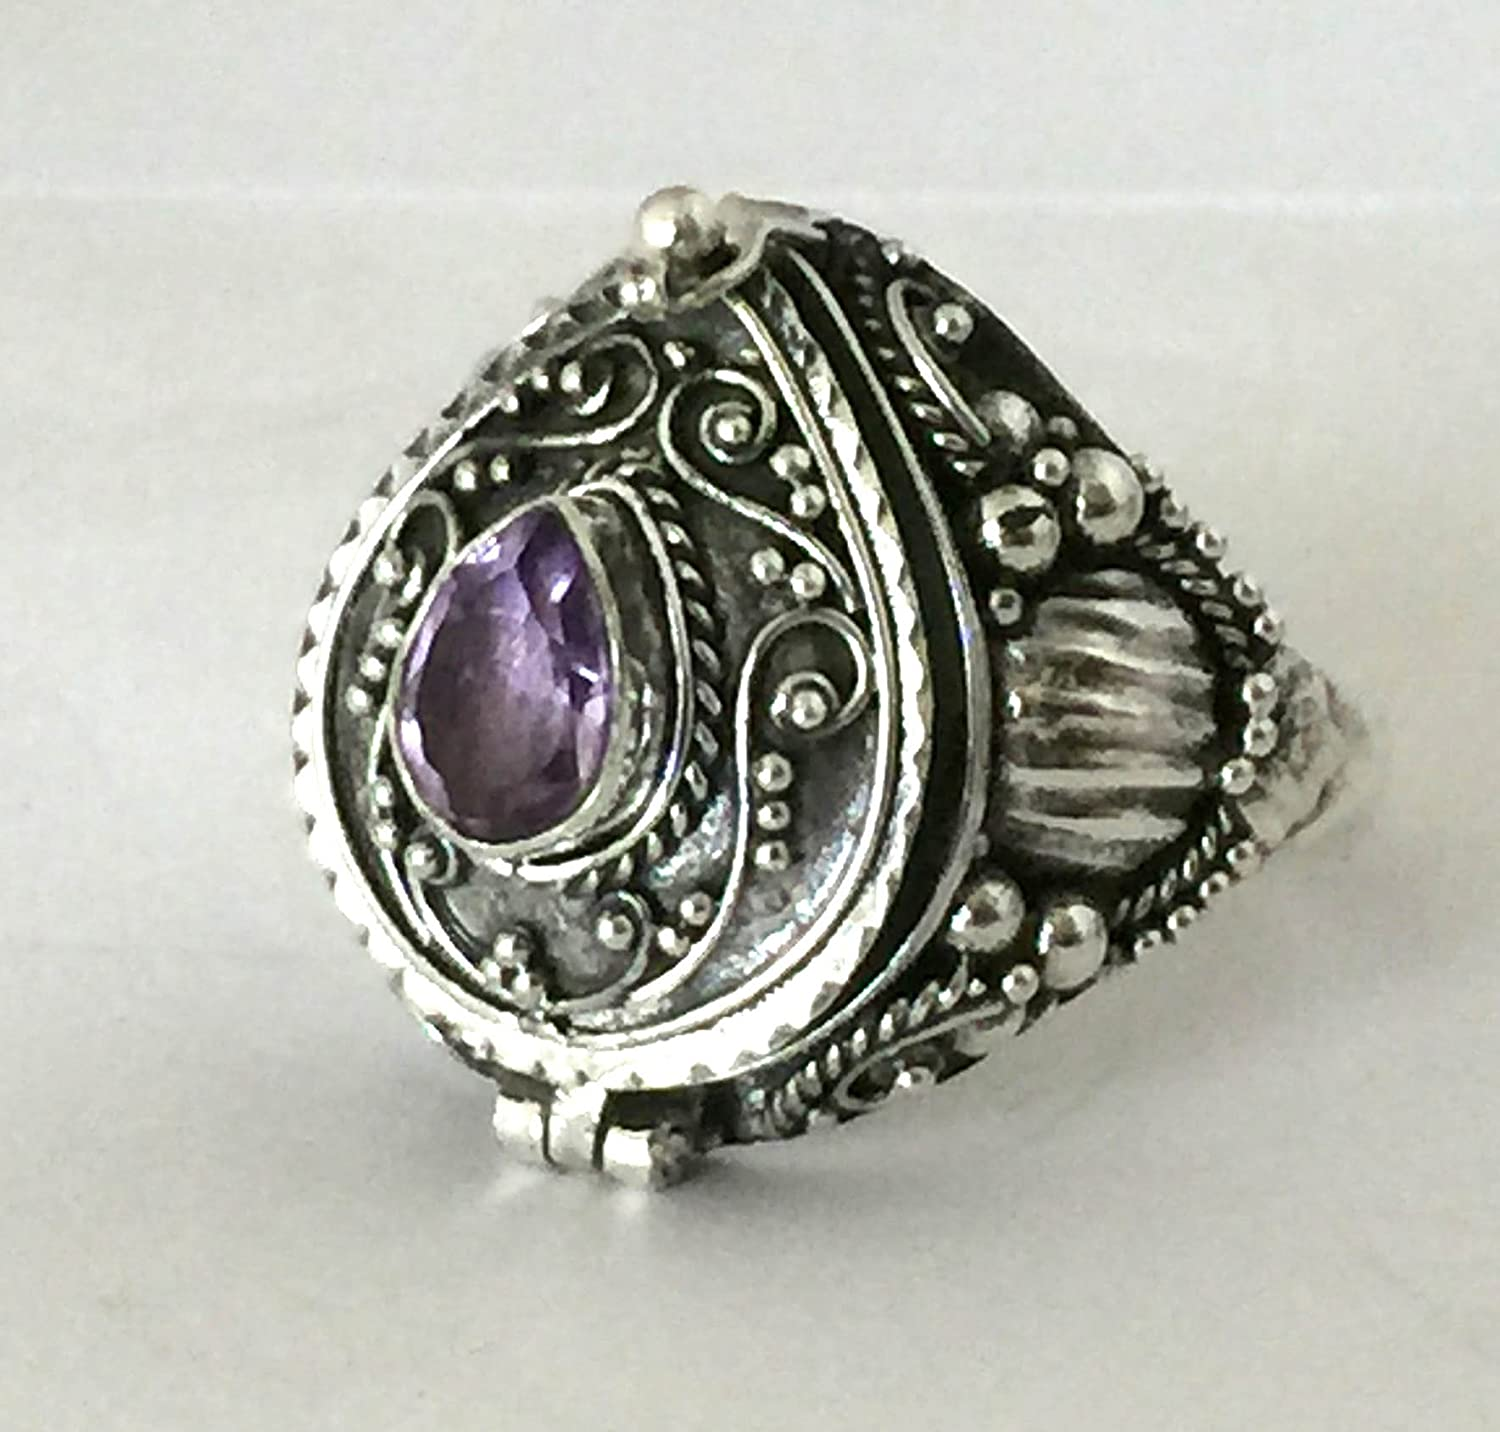 Purple Amethyst Tear drop Poison Ring Locket Sterling Silver Secret Compartment